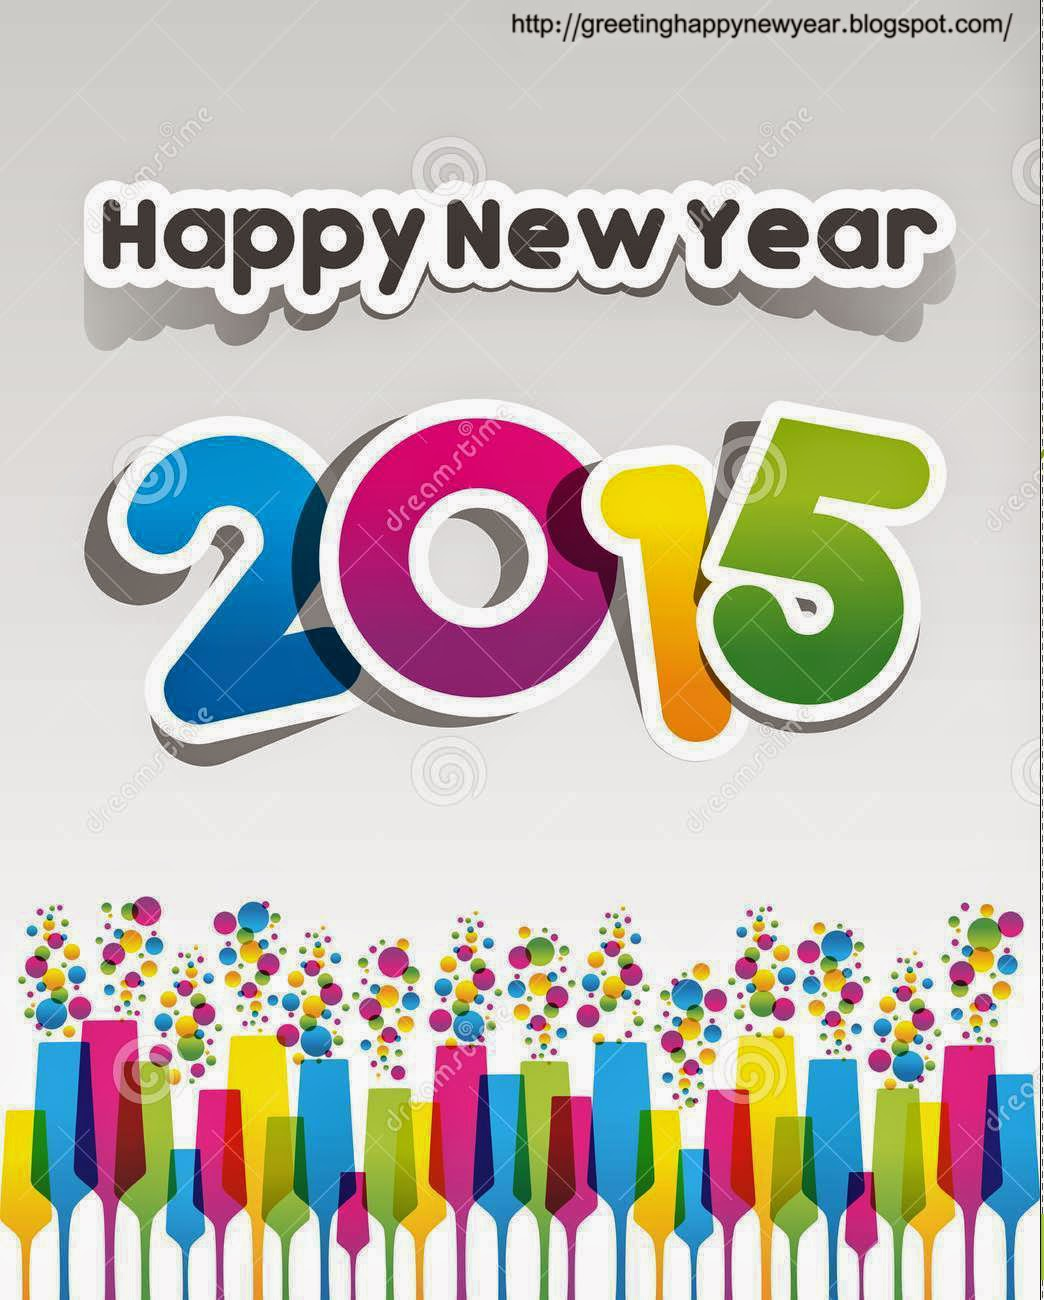 Greeting Happy New Year 2015 Pictures